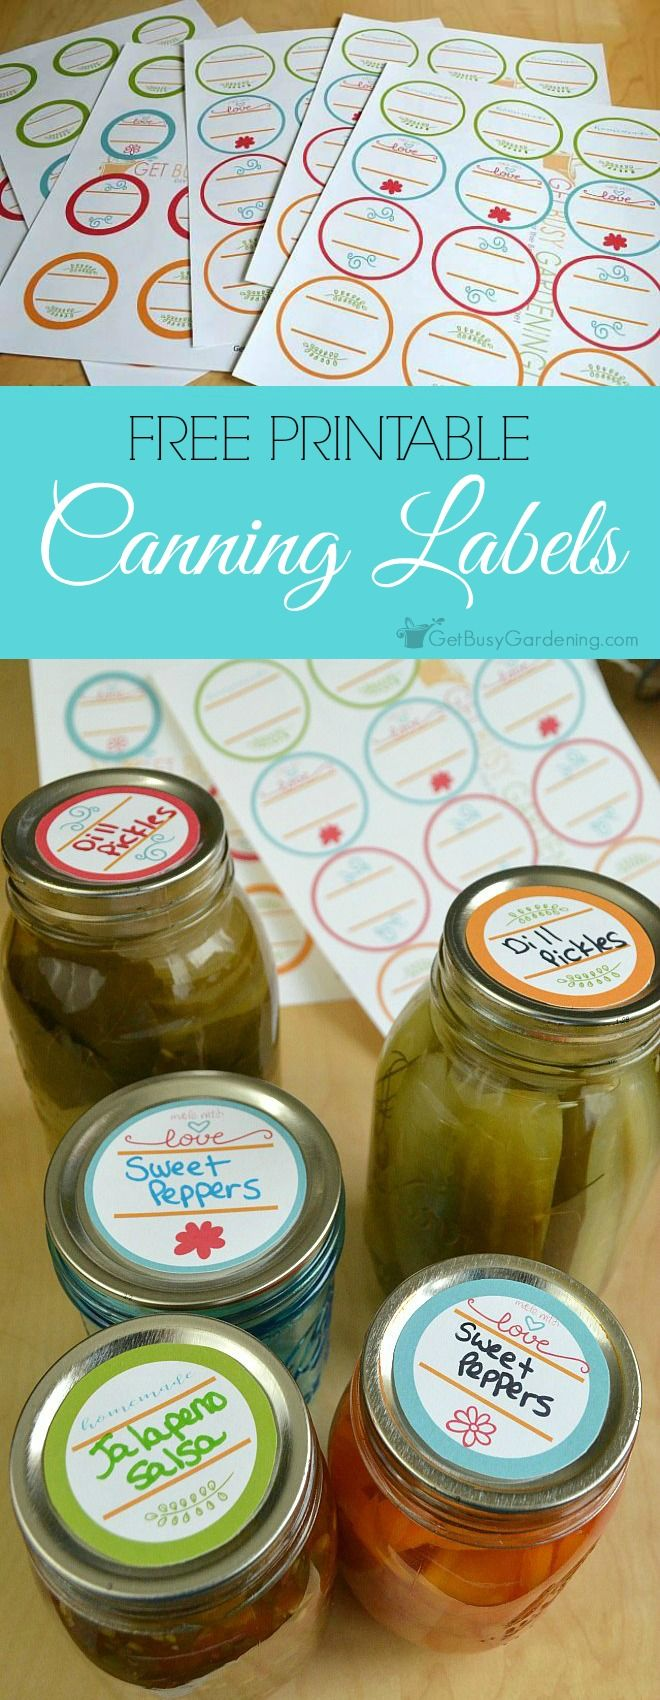 best 25+ canning jars ideas on pinterest | canning, canning